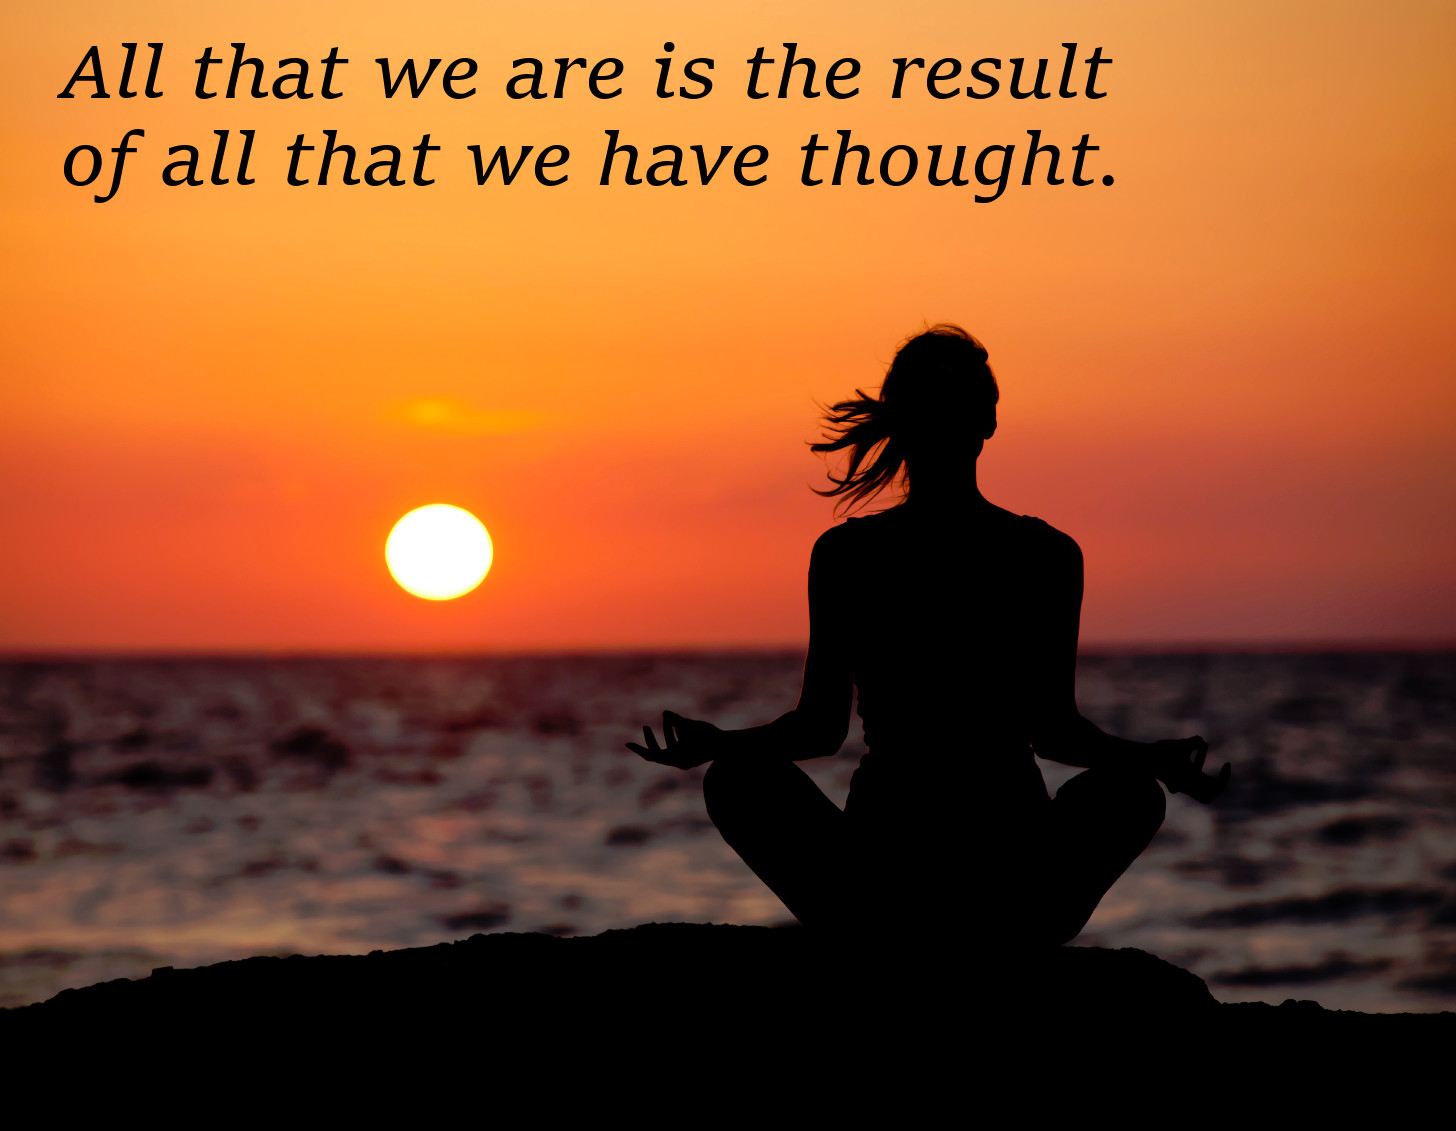 Our thoughts make us who we are